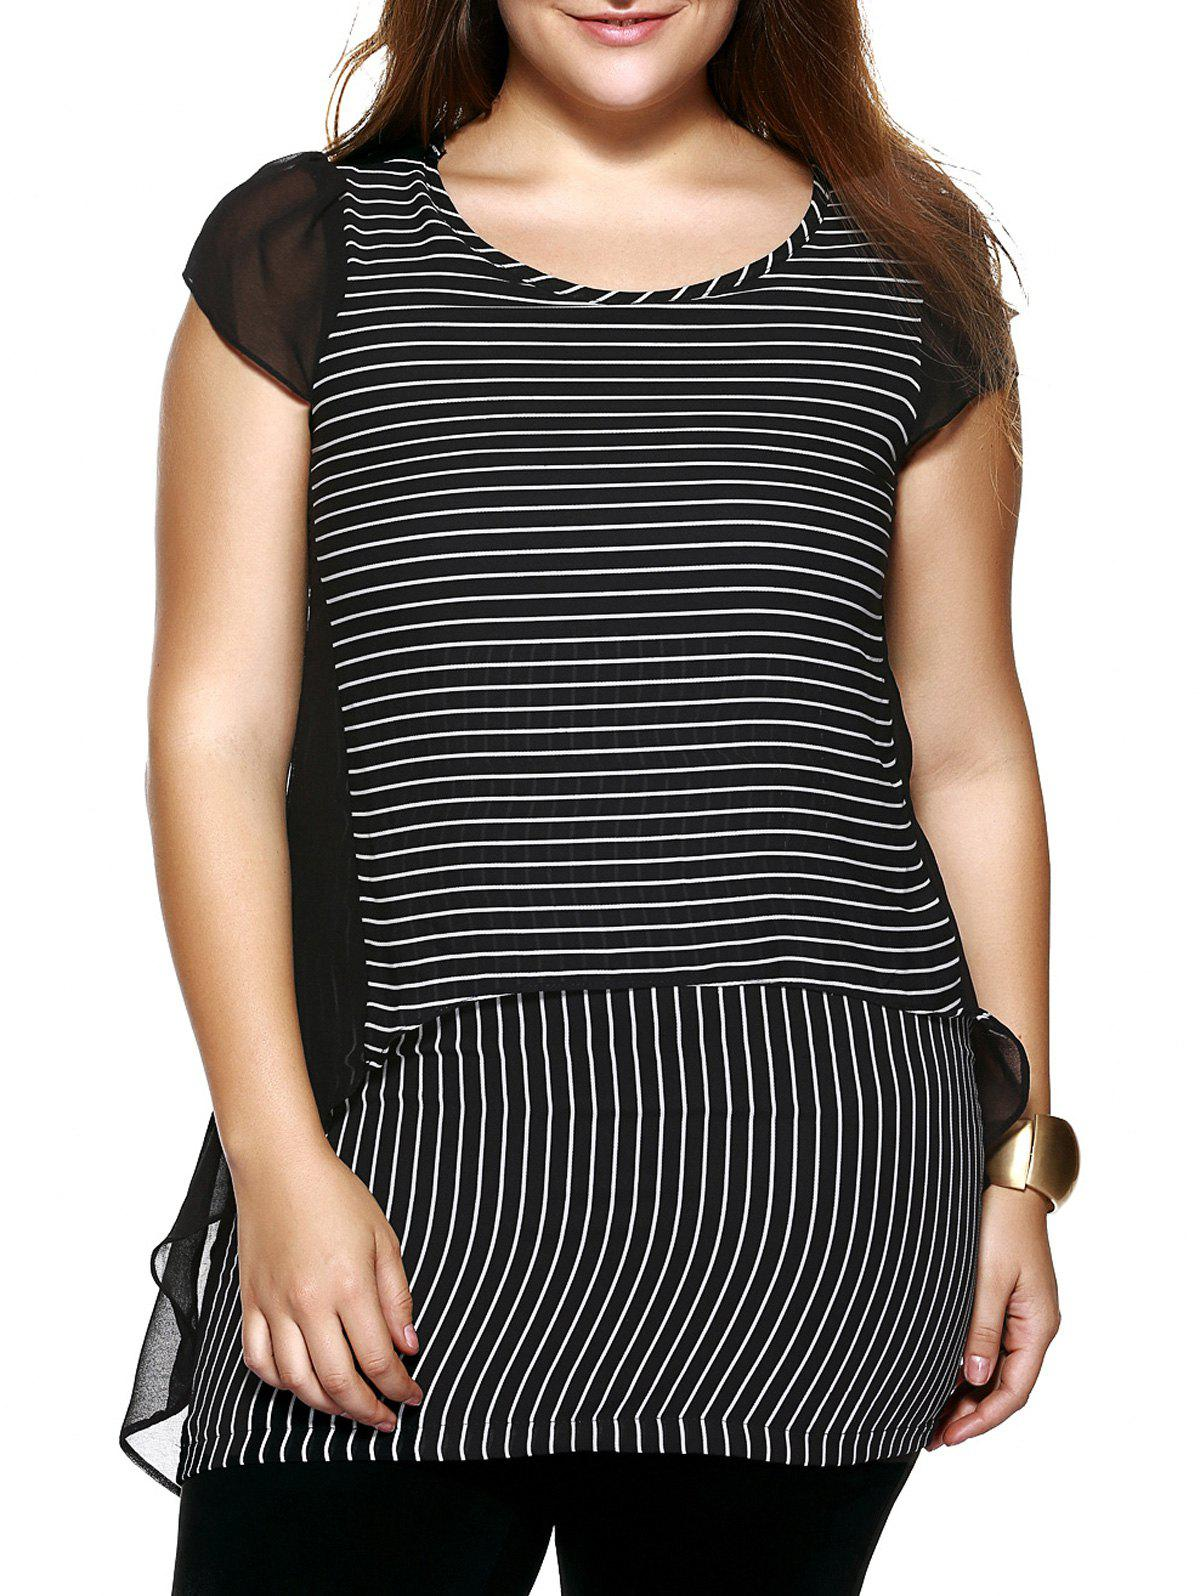 Hot Oversized Chic Striped Chiffon Spliced Blouse